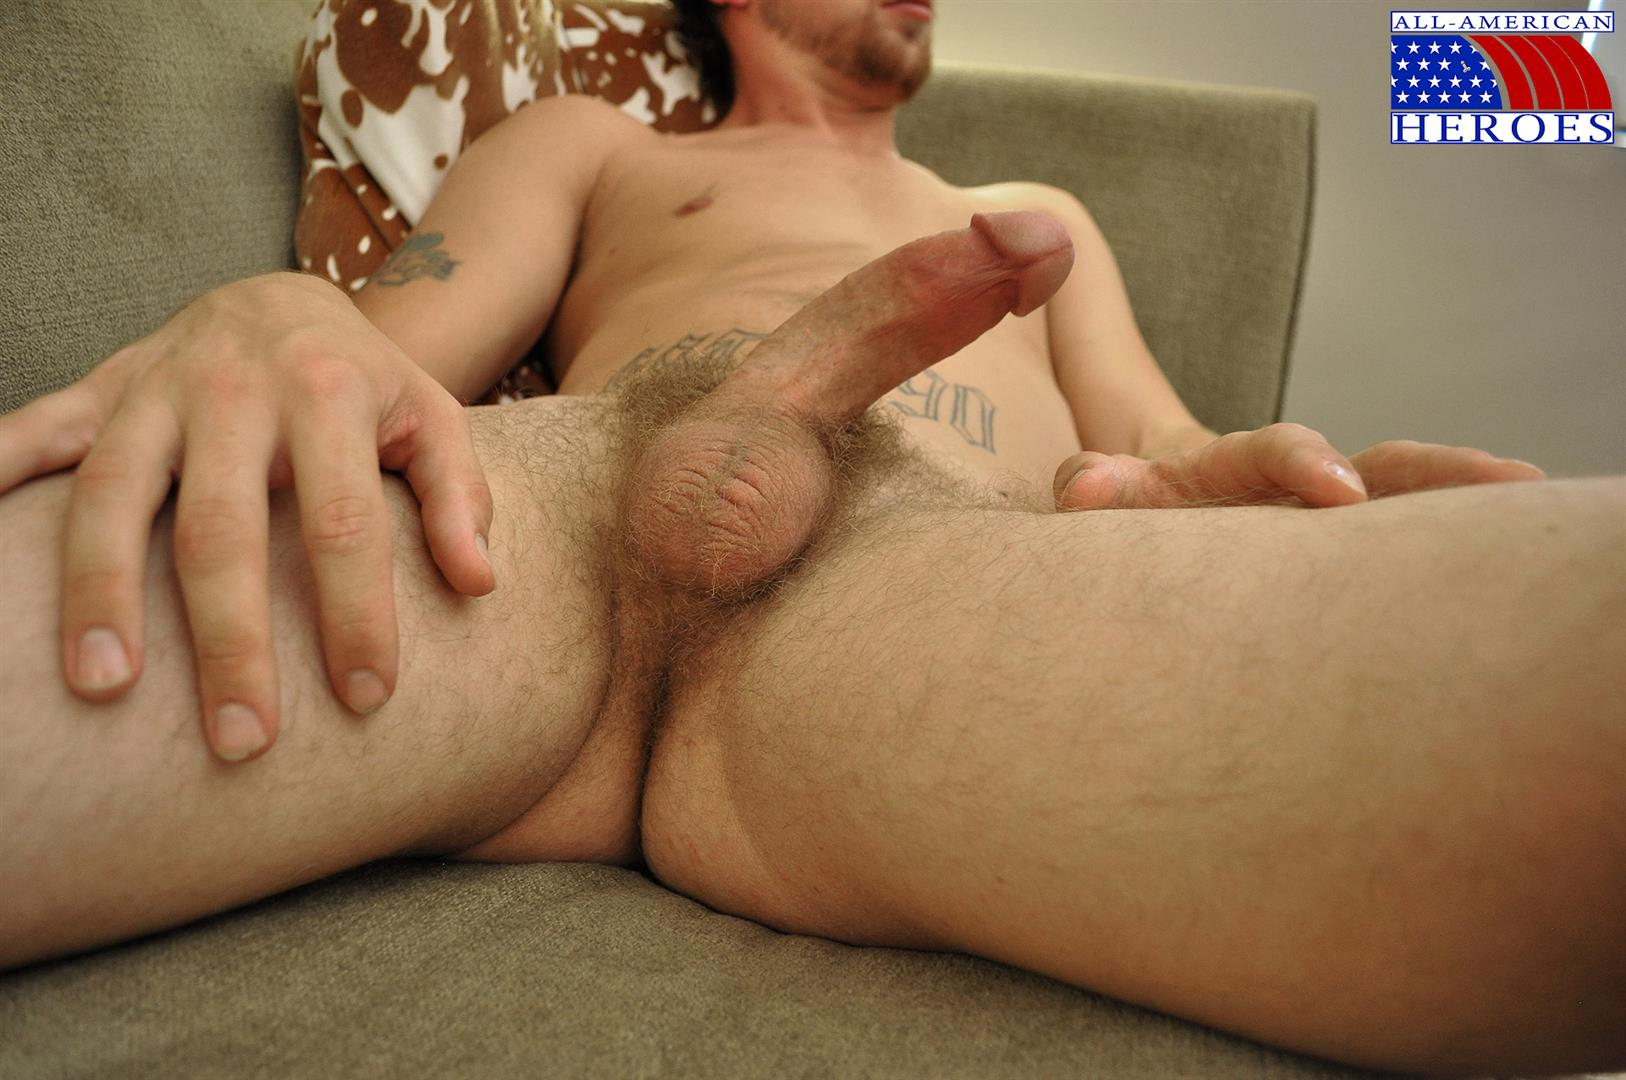 All-American-Heroes-US-Army-Specialist-Clark-Jerking-His-Big-Hairy-Cock-Amateur-Gay-Porn-11 US Army Specialist Masturbating His Hairy Curved Cock